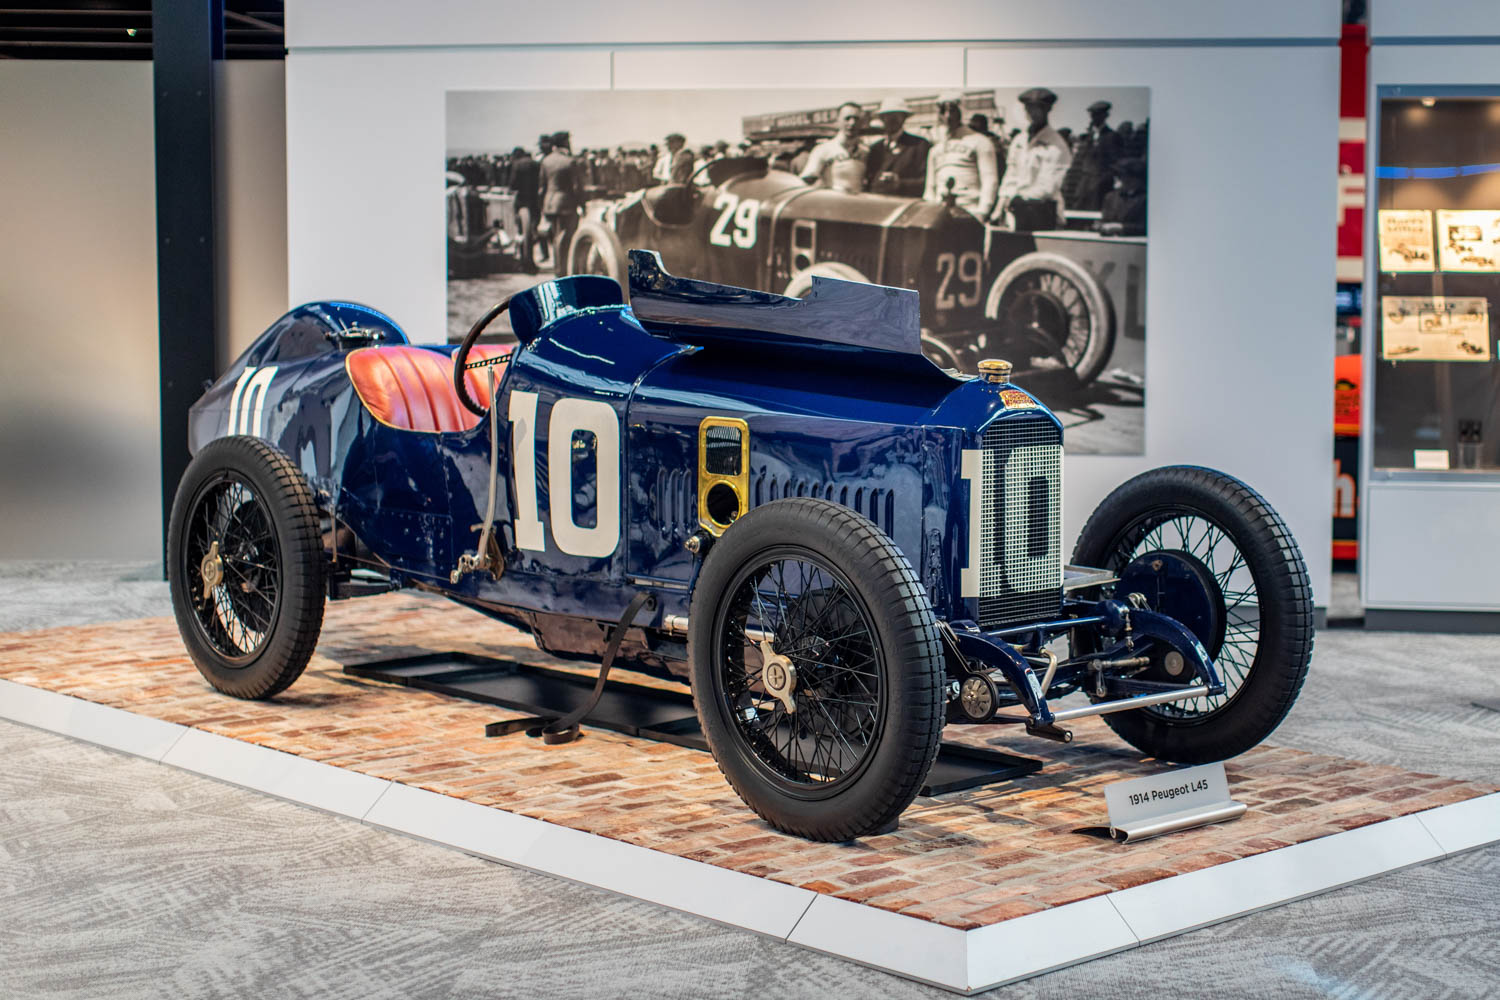 The 1914 Peugeot L45 raced at Indy in 1916 with the first twin-cam, 16-valve engine.